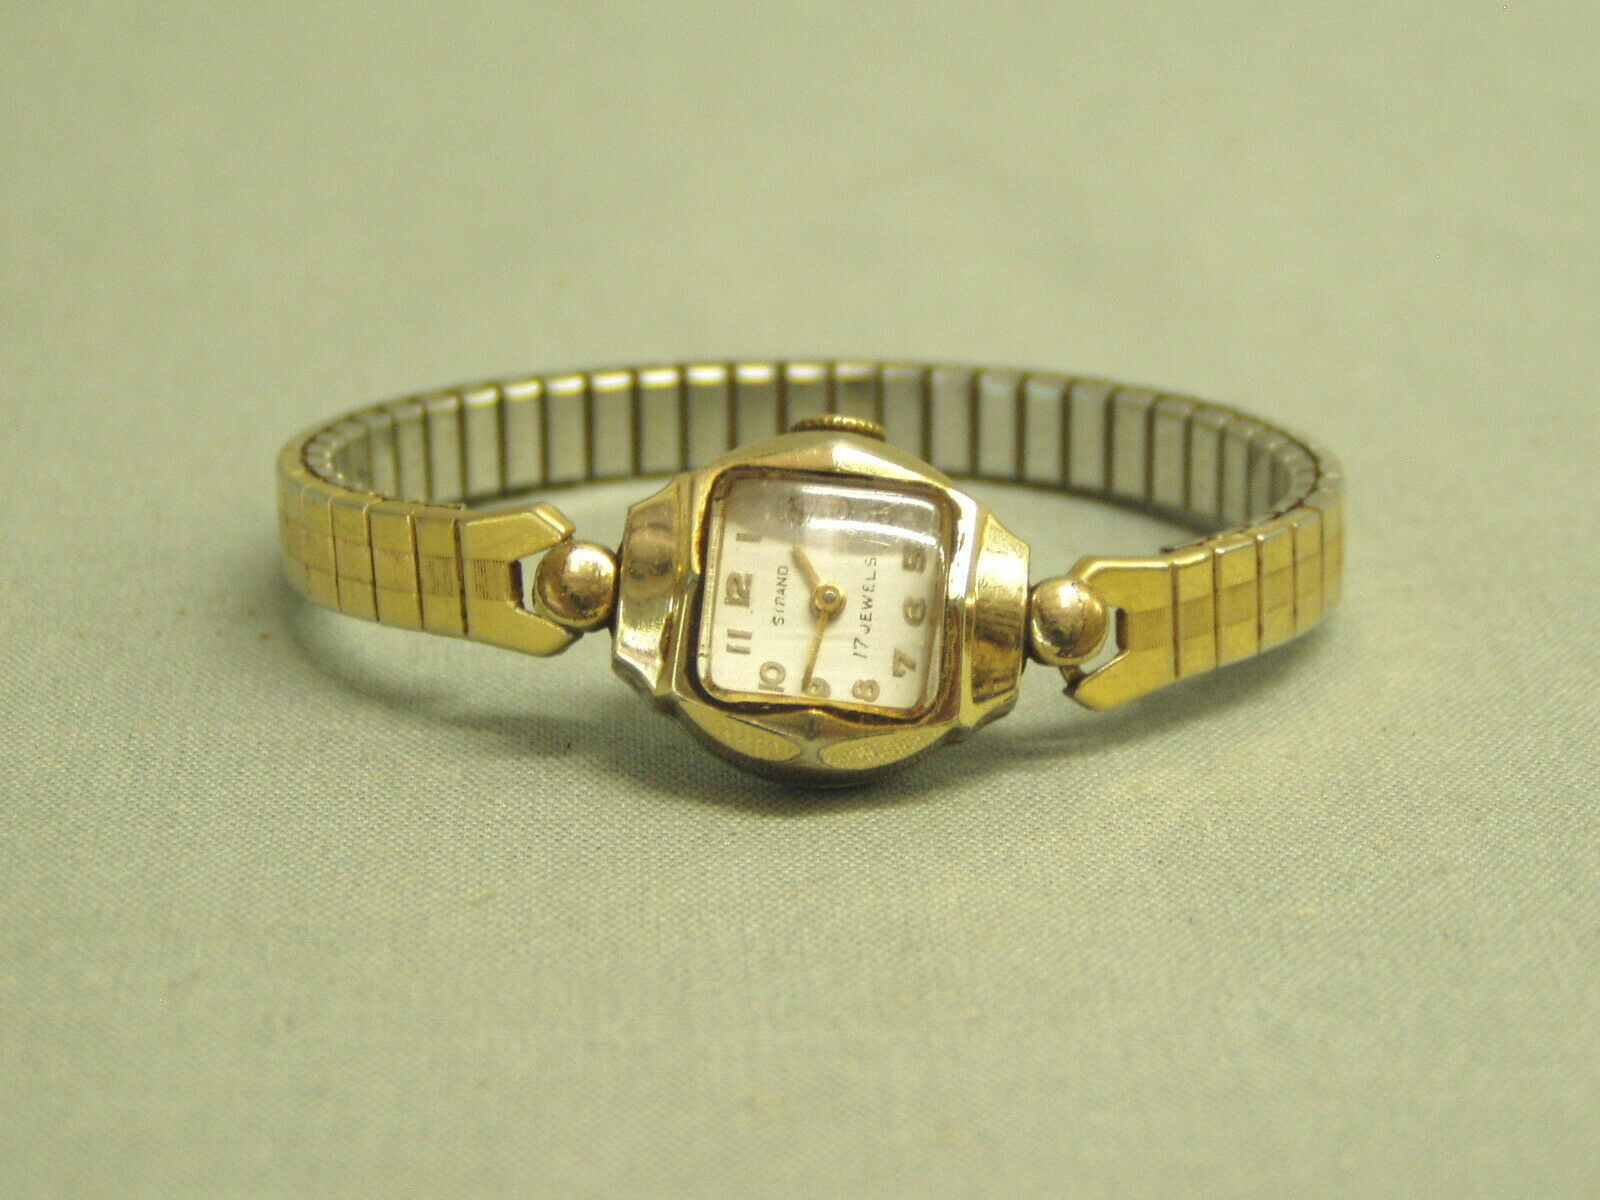 Vintage Strand Ladies Wrist Watch 17 Jewels Swiss 10K RGP case stretch band 50's